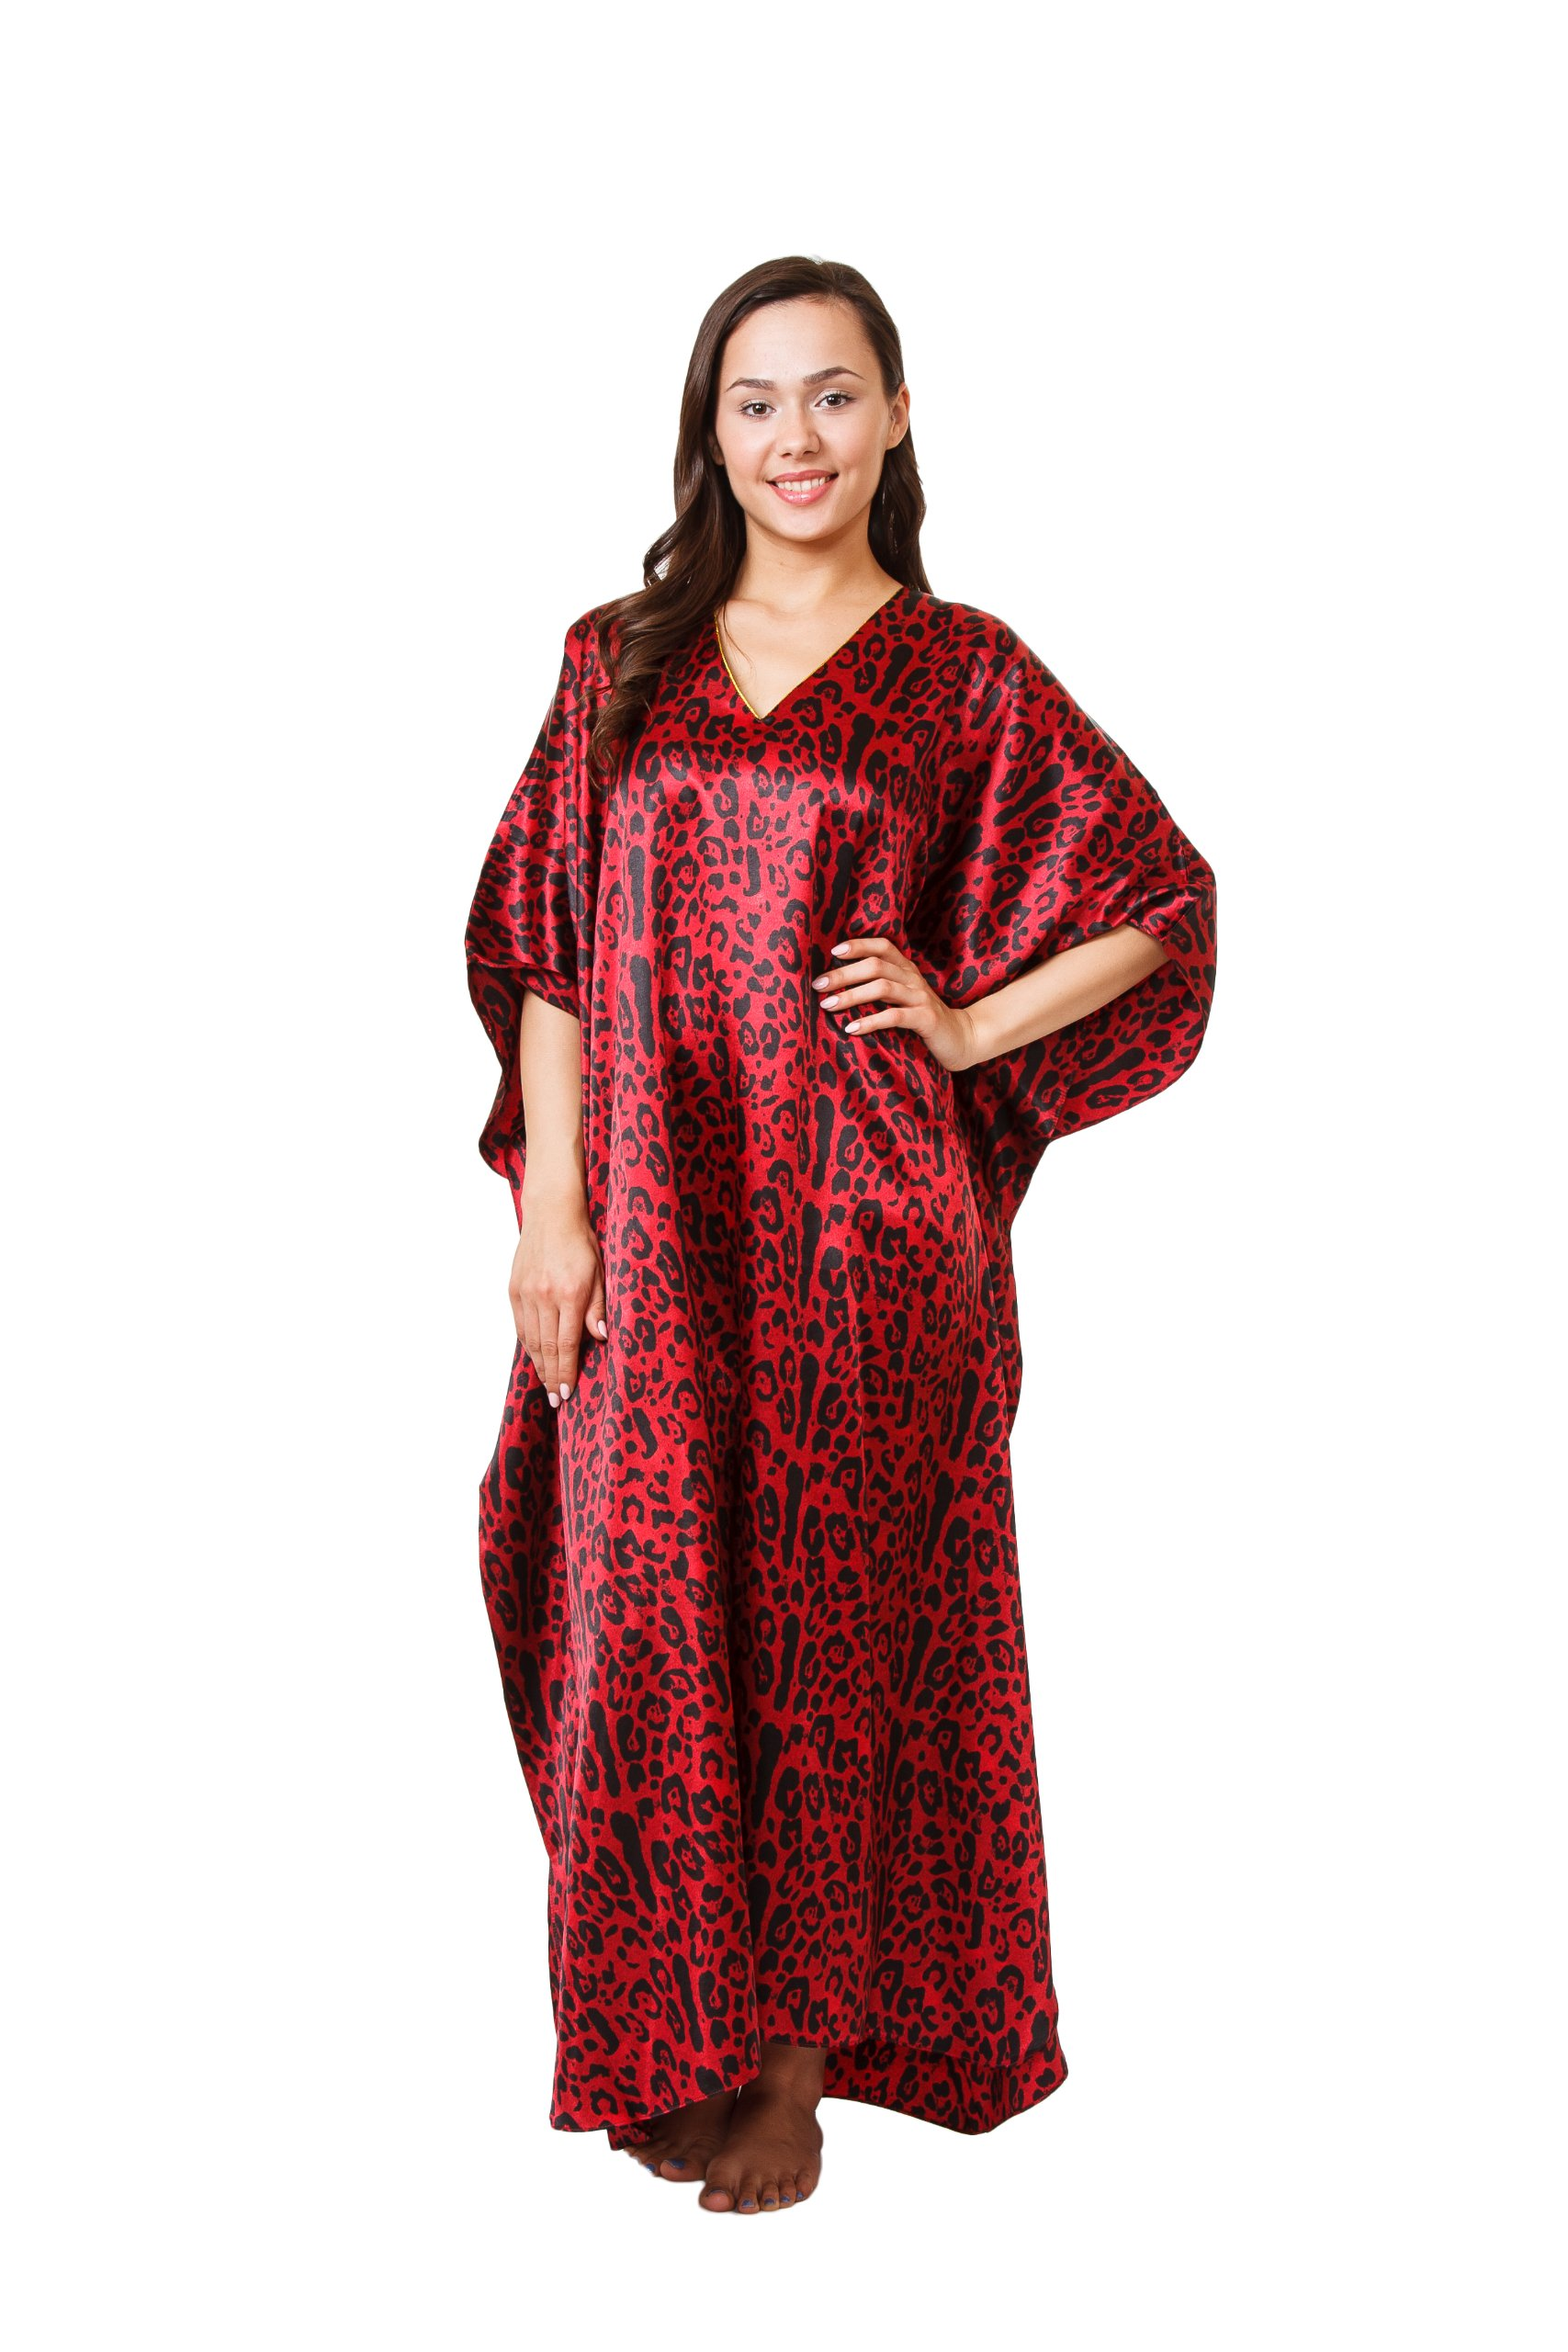 Up2date Fashion Women's Red Animal Print Caftan, One Size Fits Most, Style#Caf-65